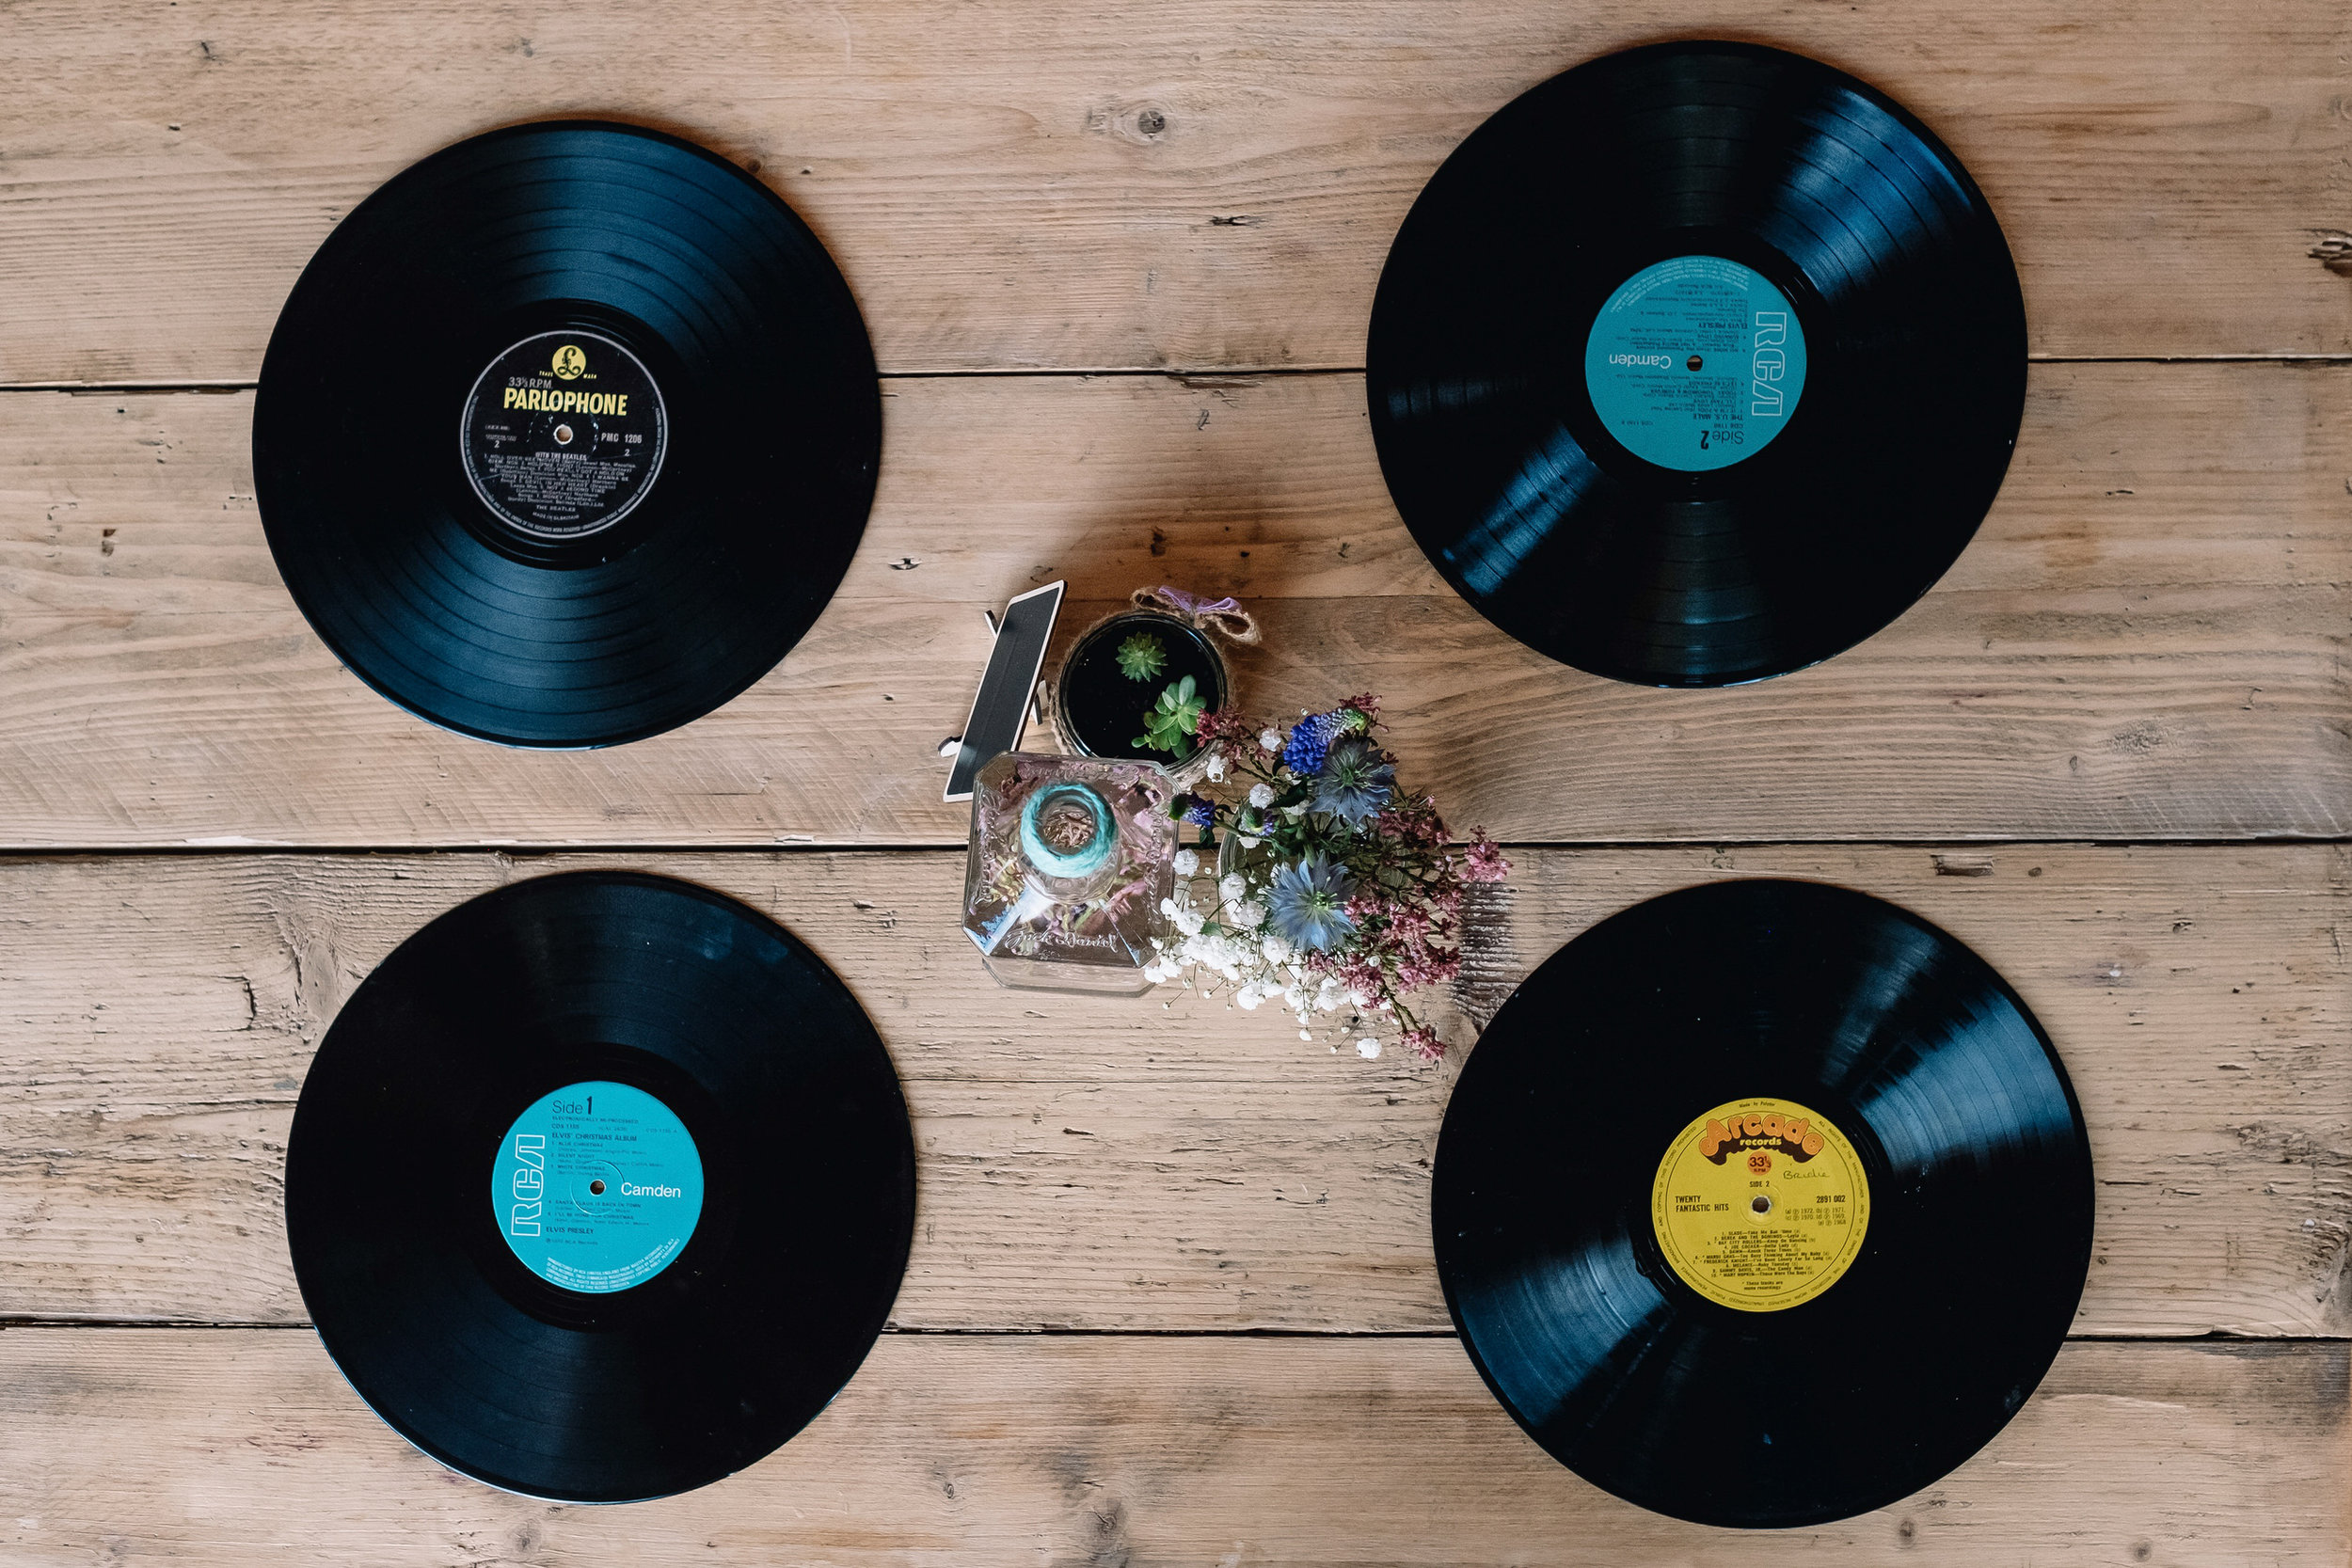 Table settings of vinyl records